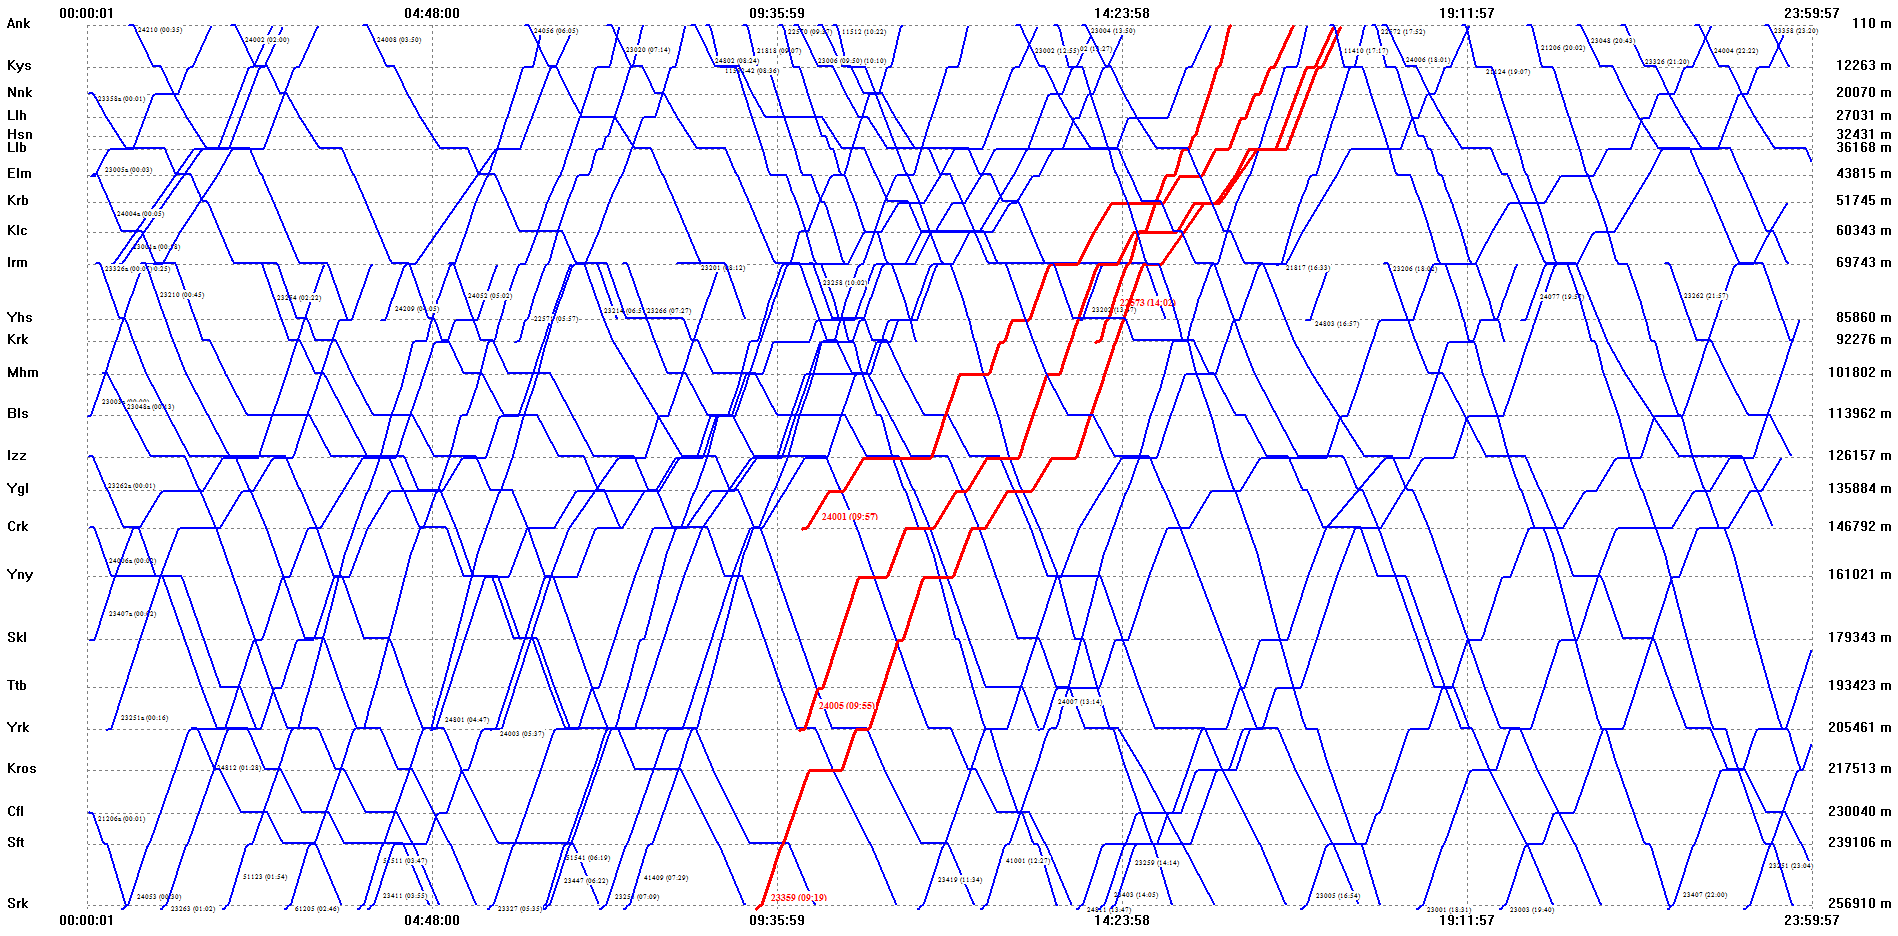 Obtained train graph for a main line